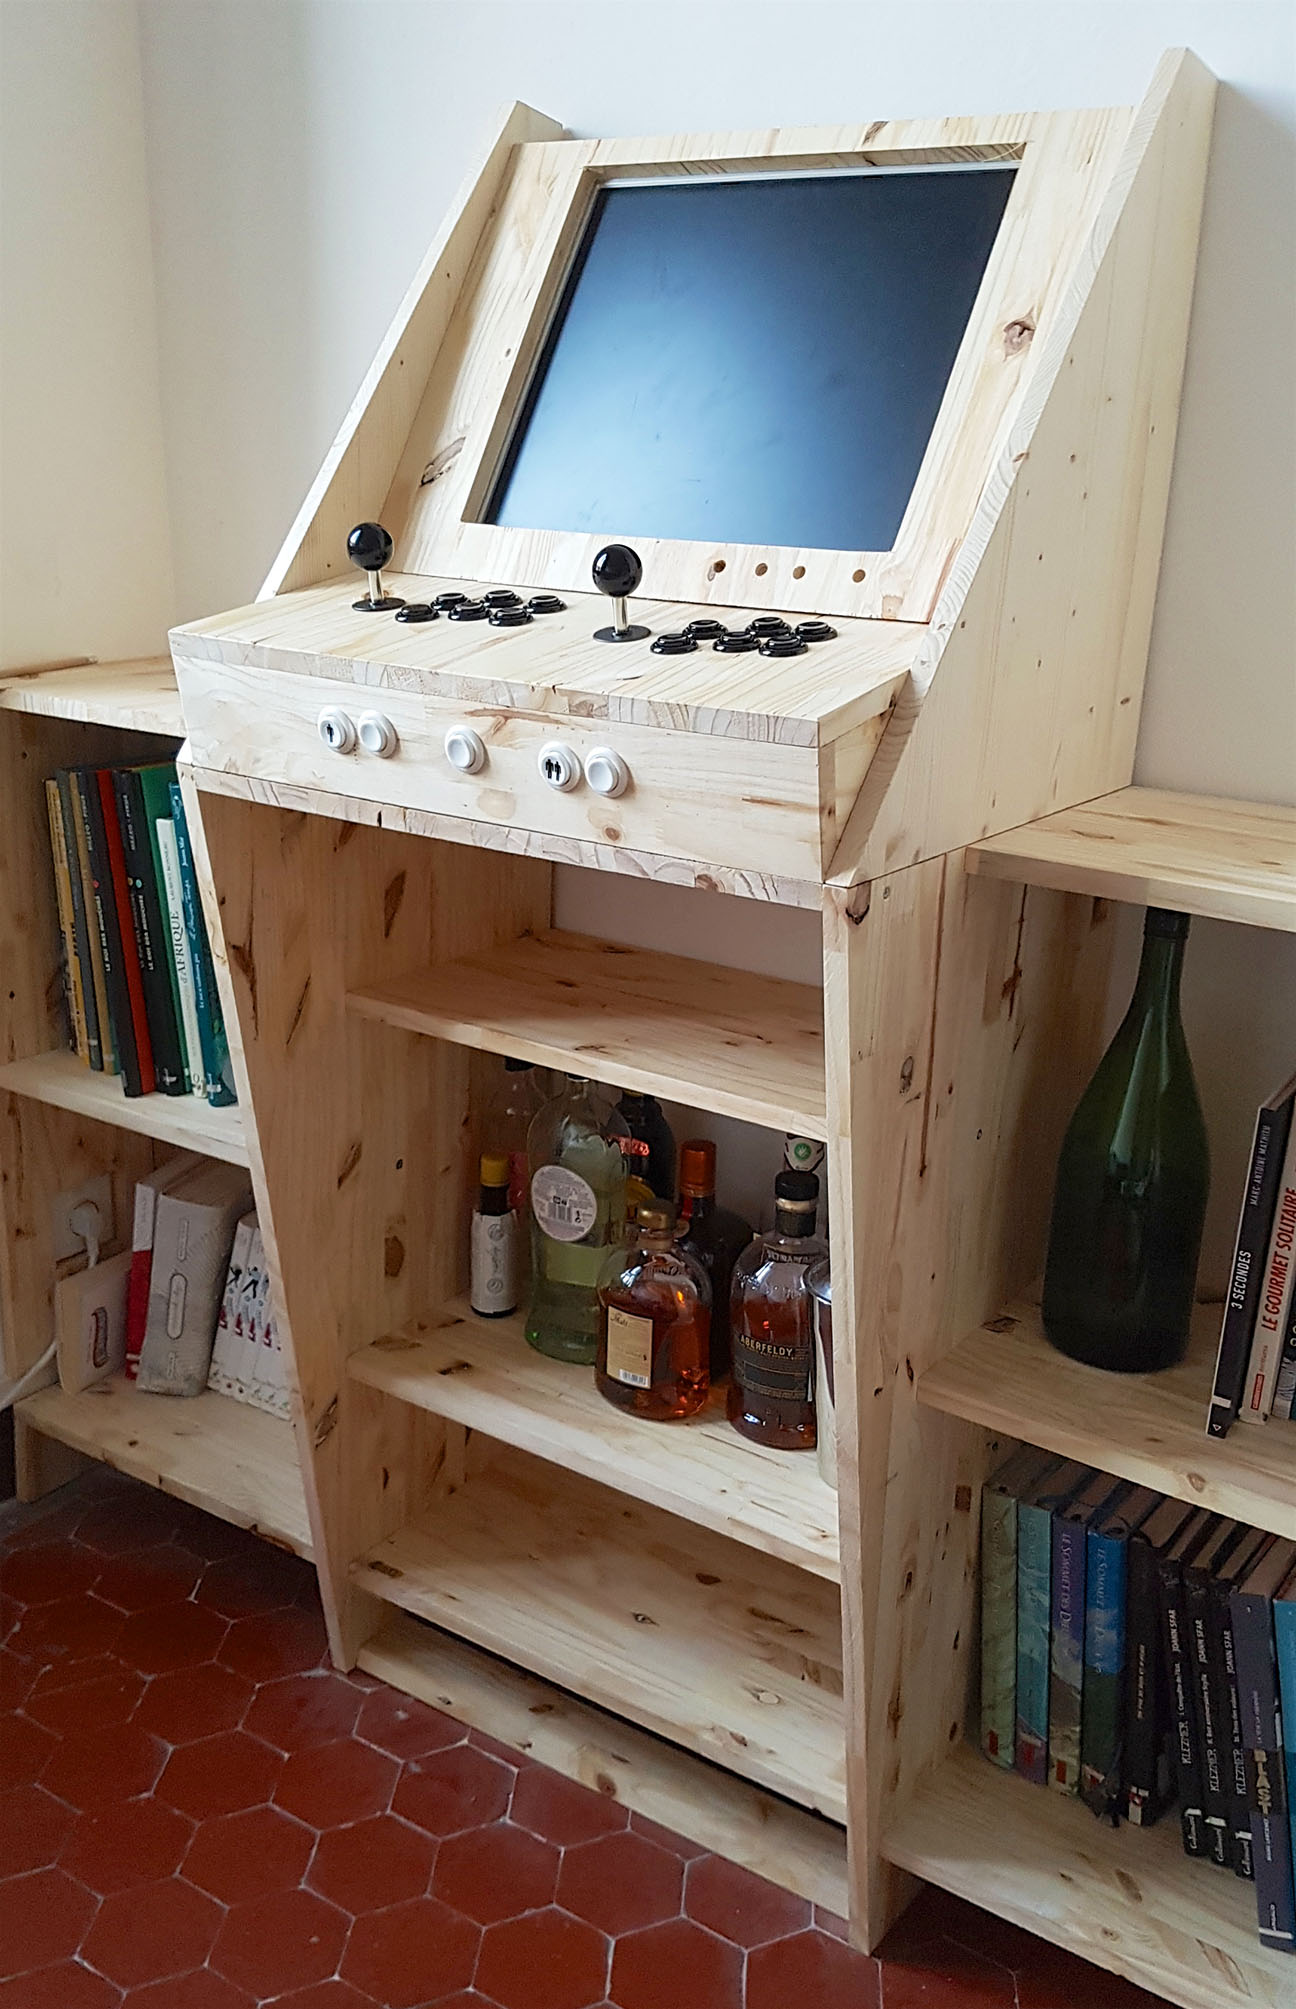 DIY creation of an arcade cabinet combining video games, bar and library. A modern and very personal interpretation of the arcade cabinet.